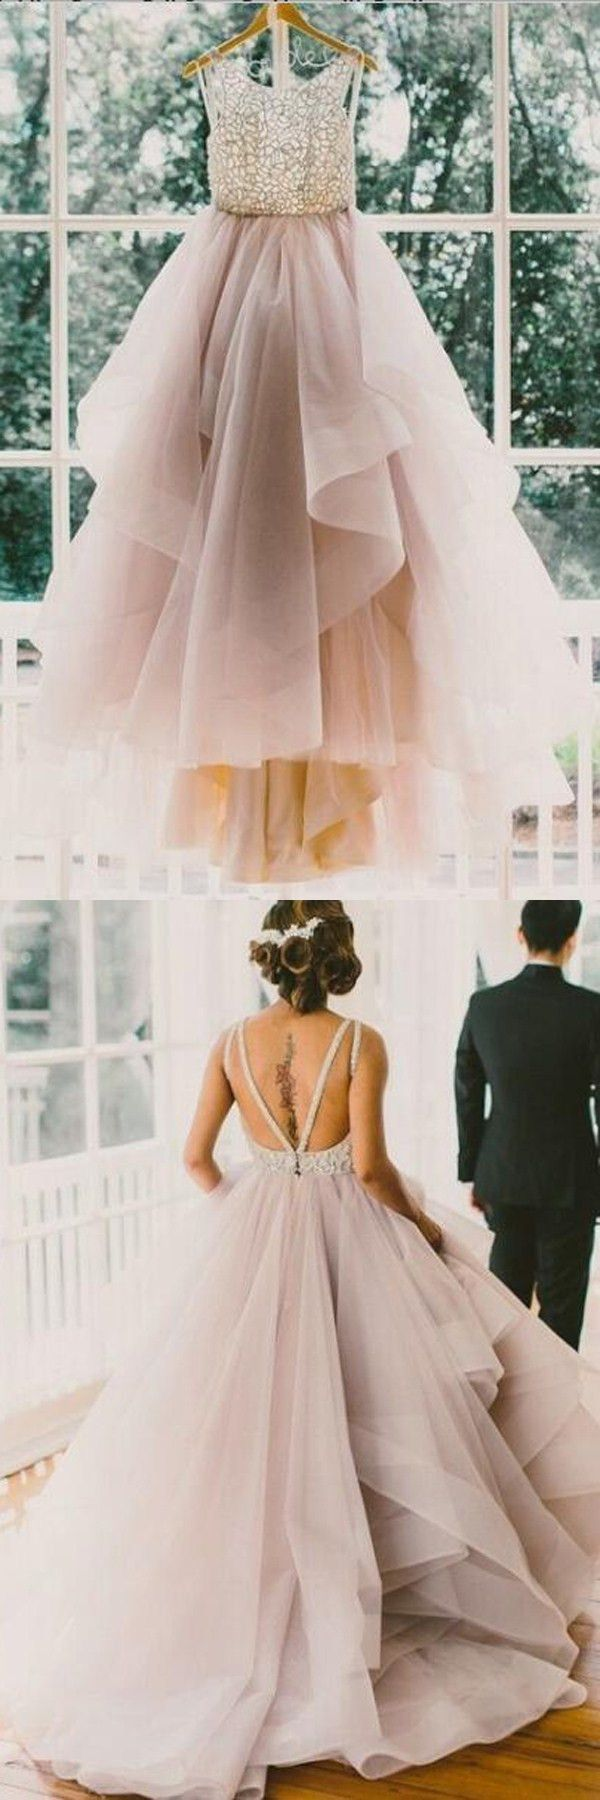 Pin by lare on cute dresses in pinterest prom dresses